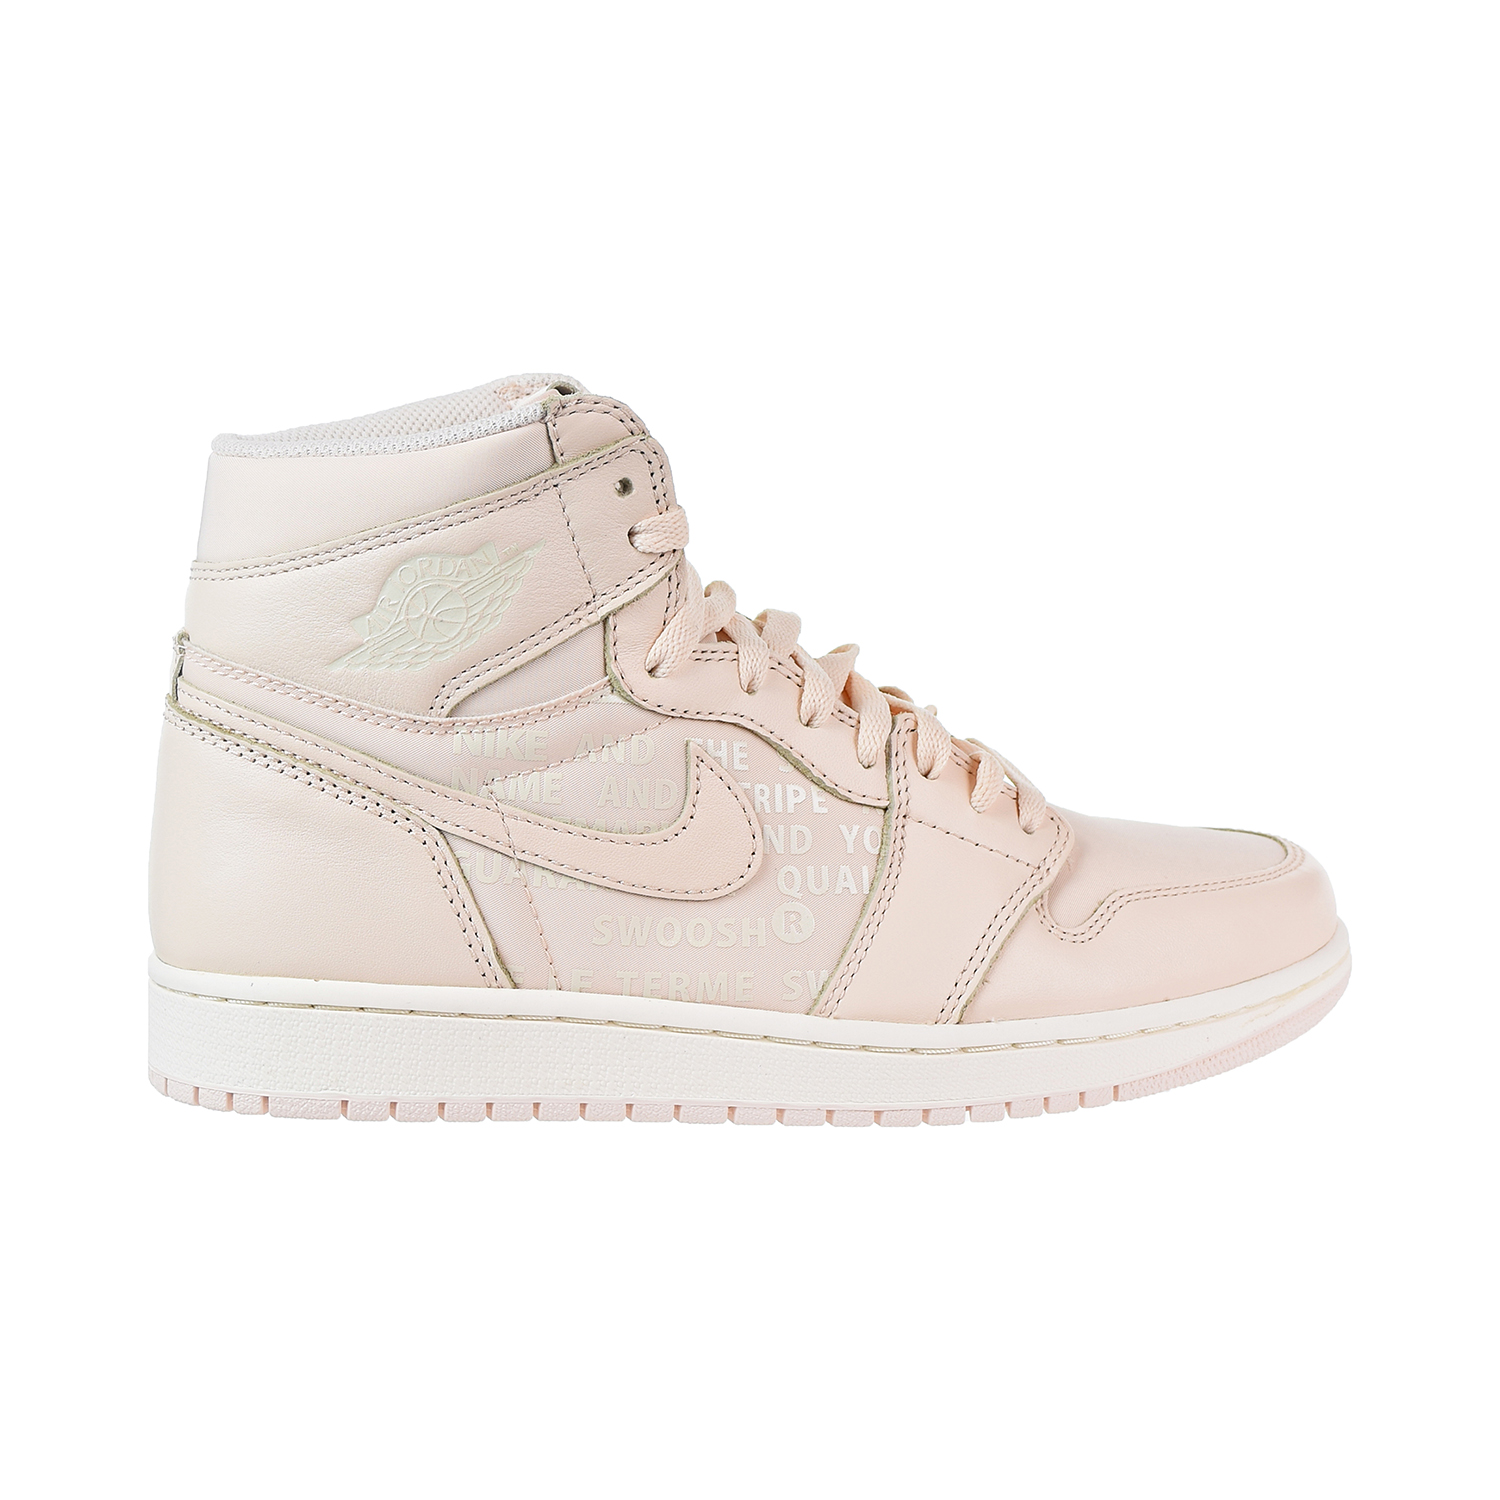 new product 8df28 2f9b4 Details about Air Jordan 1 Retro High OG Men s Shoes Guava Ice Sail  555088-801